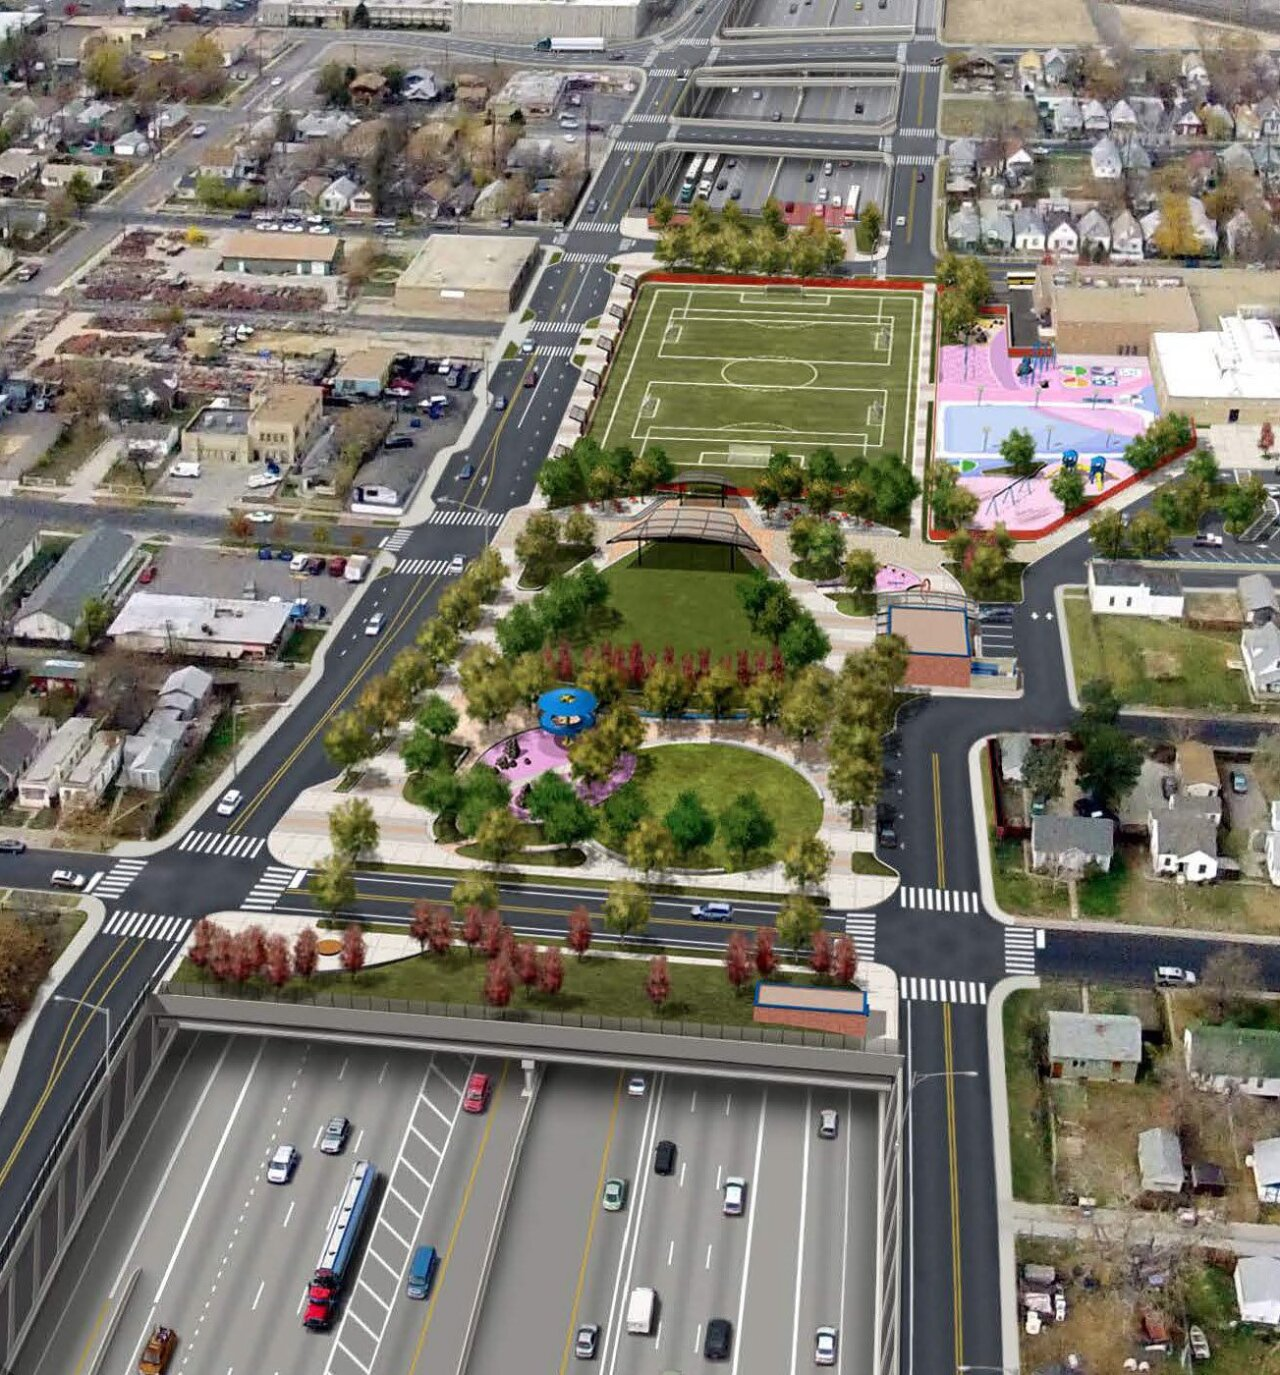 Park planned to cover lowered section of I-70